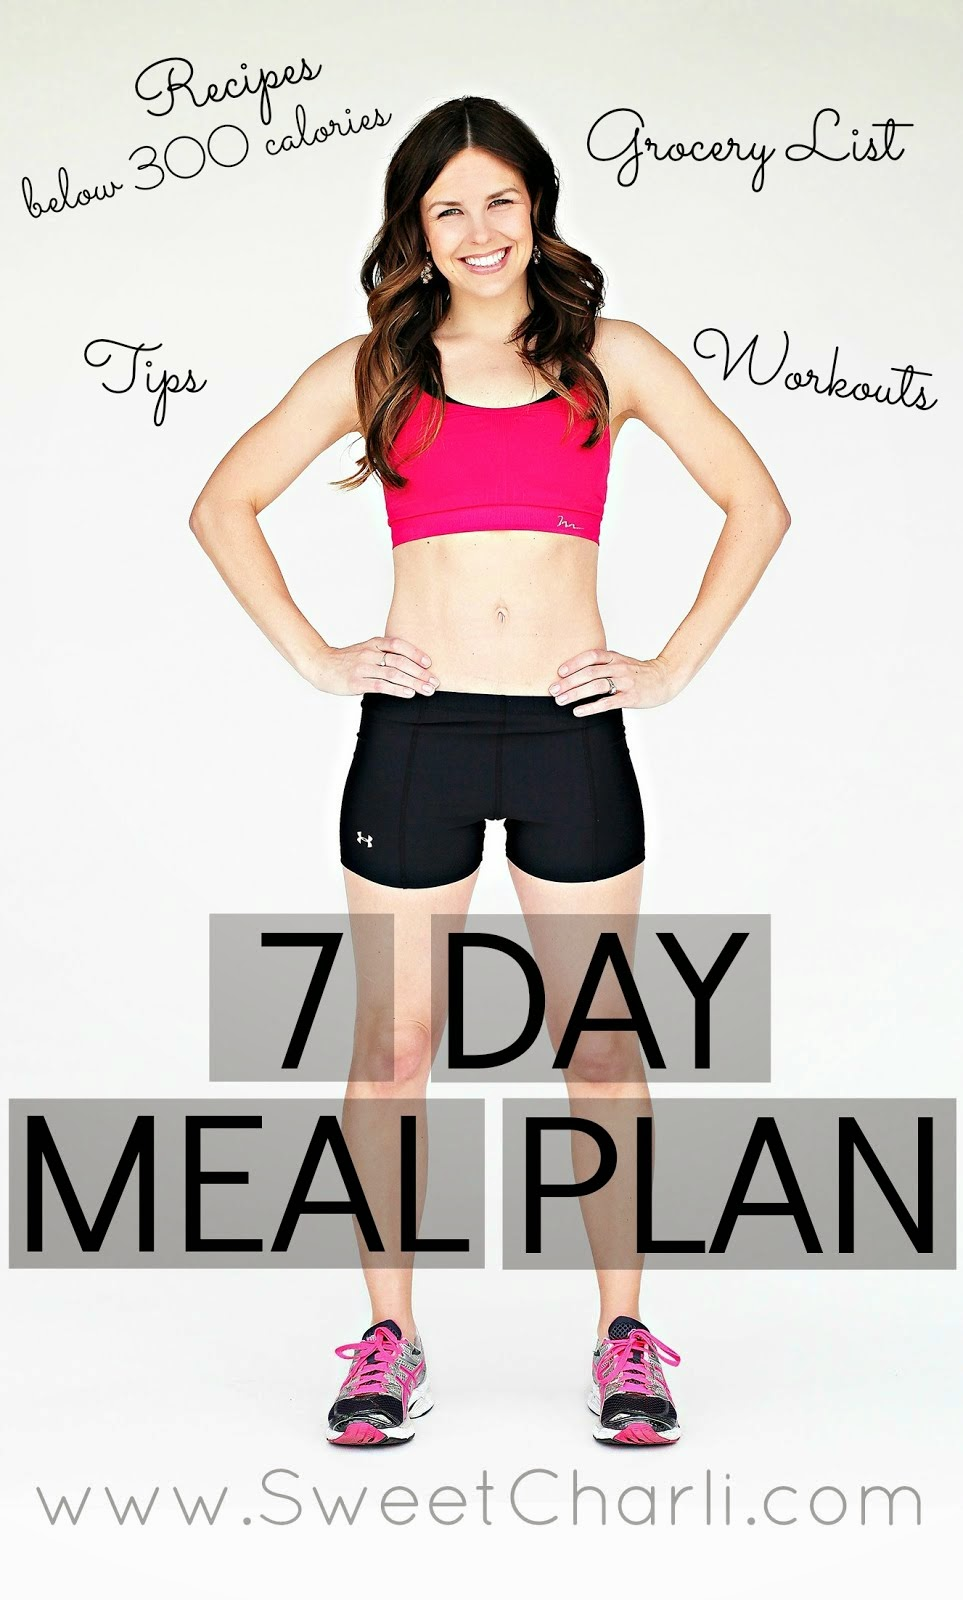 Get your 7-day meal plan here!